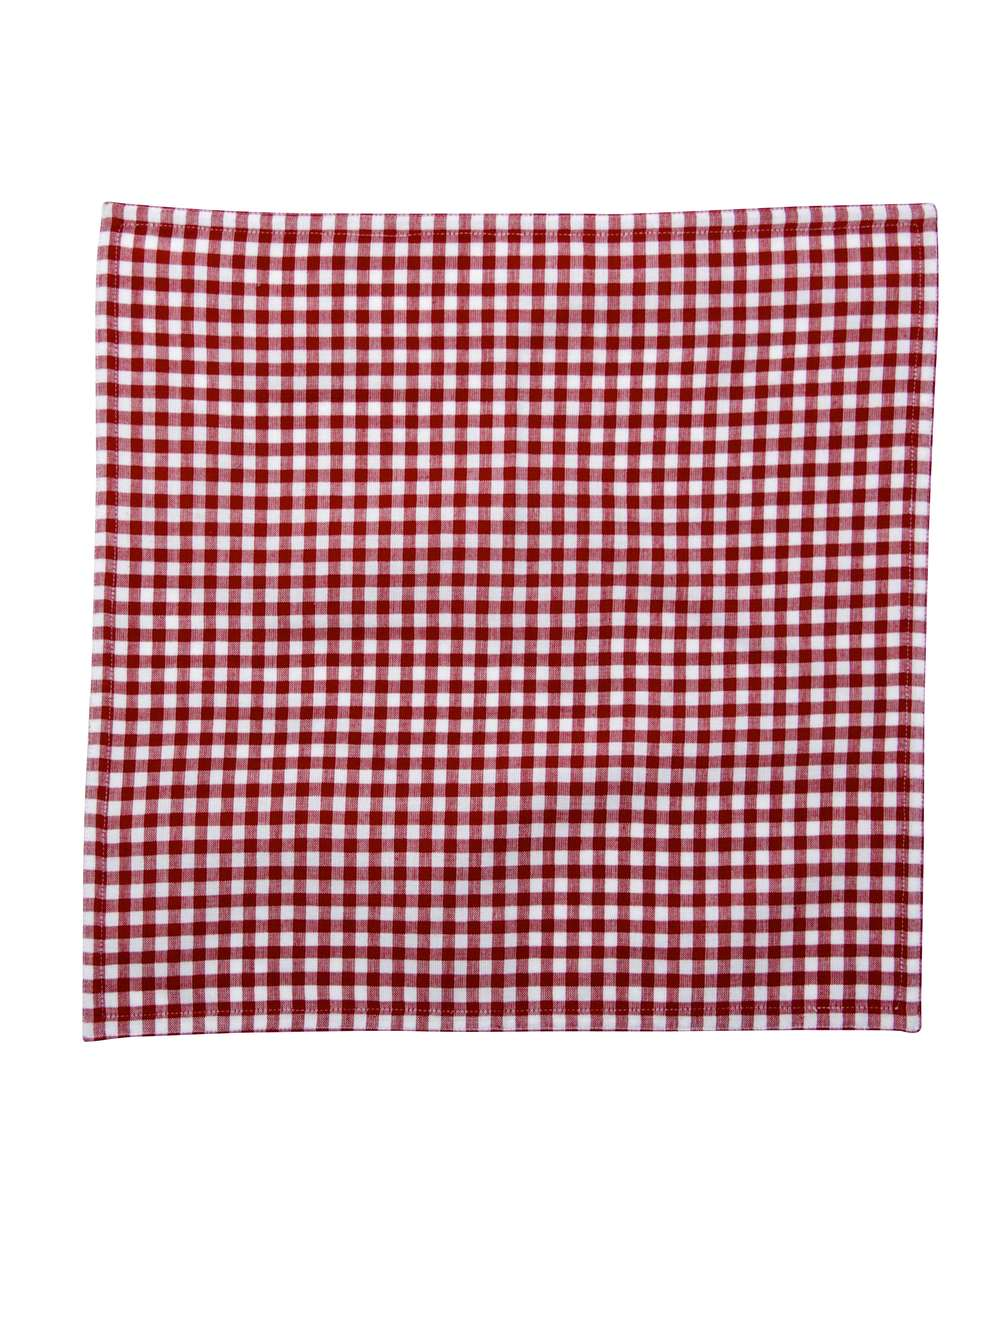 Red Gingham Table Linens Red Gingham Check Placemat